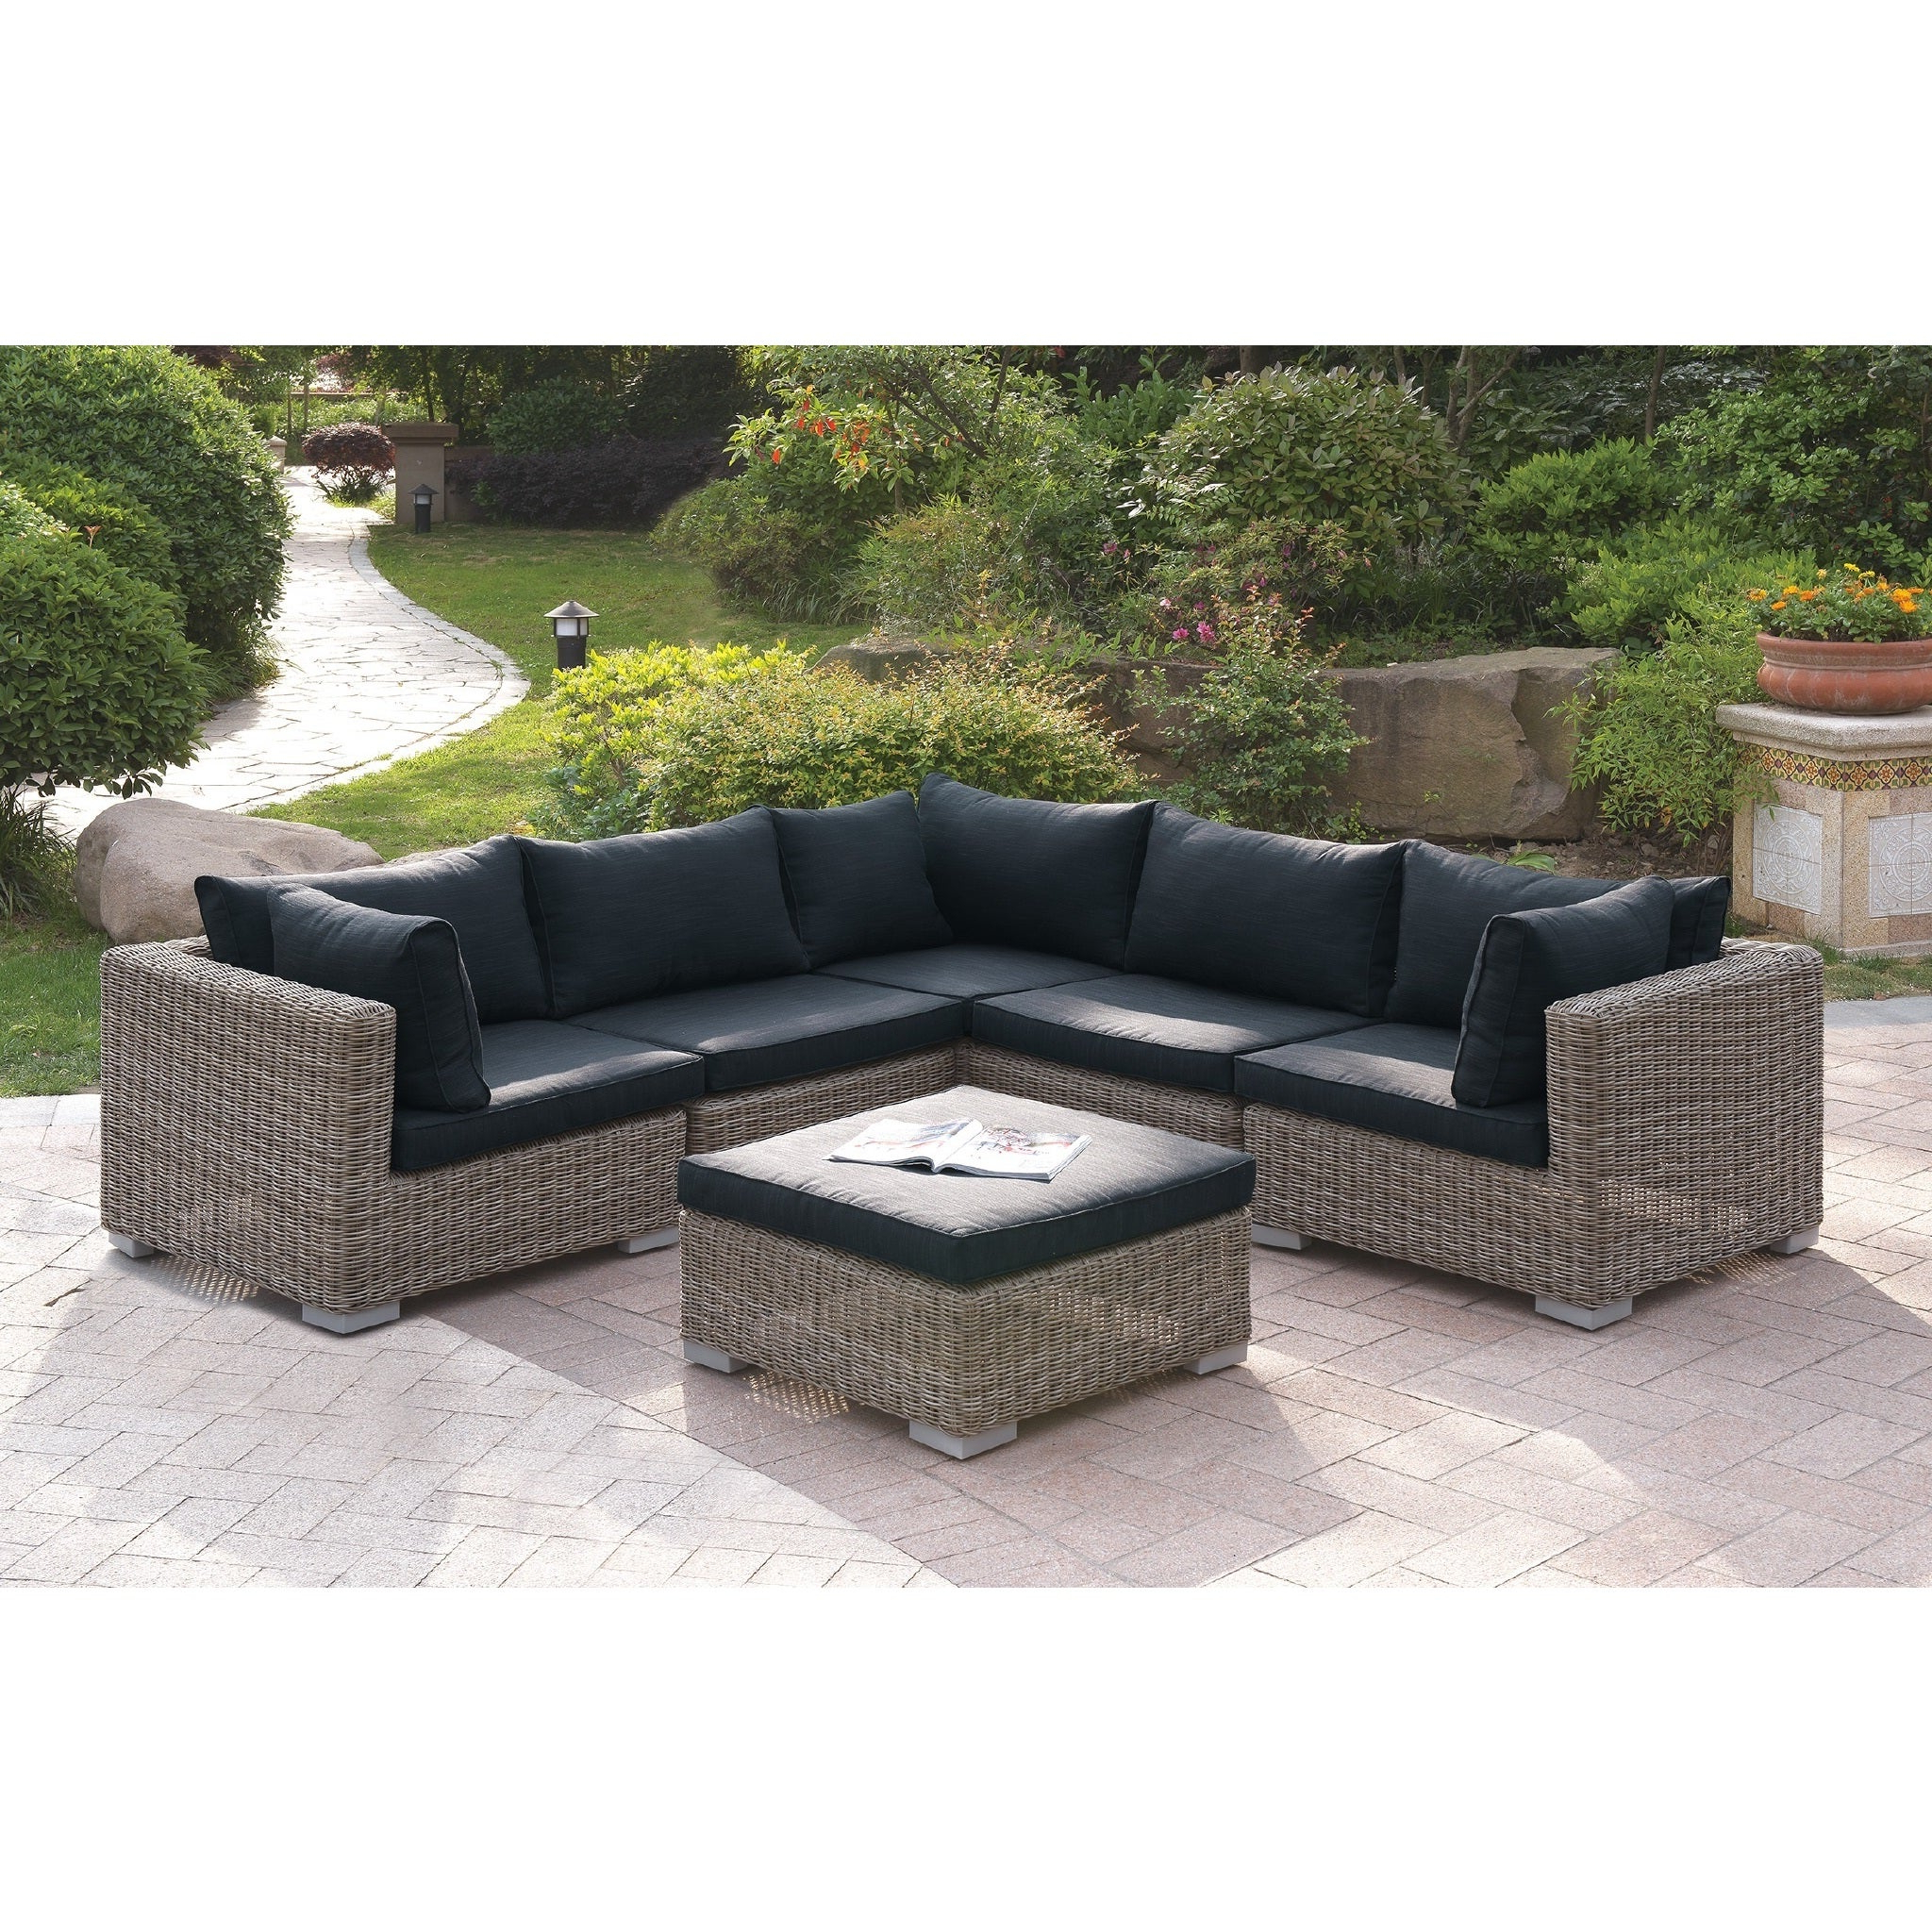 Current Tess Corner Living Patio Sectionals With Cushions Intended For Harvey 6 Piece Patio Sectional Set Ii With Cushions (View 9 of 20)